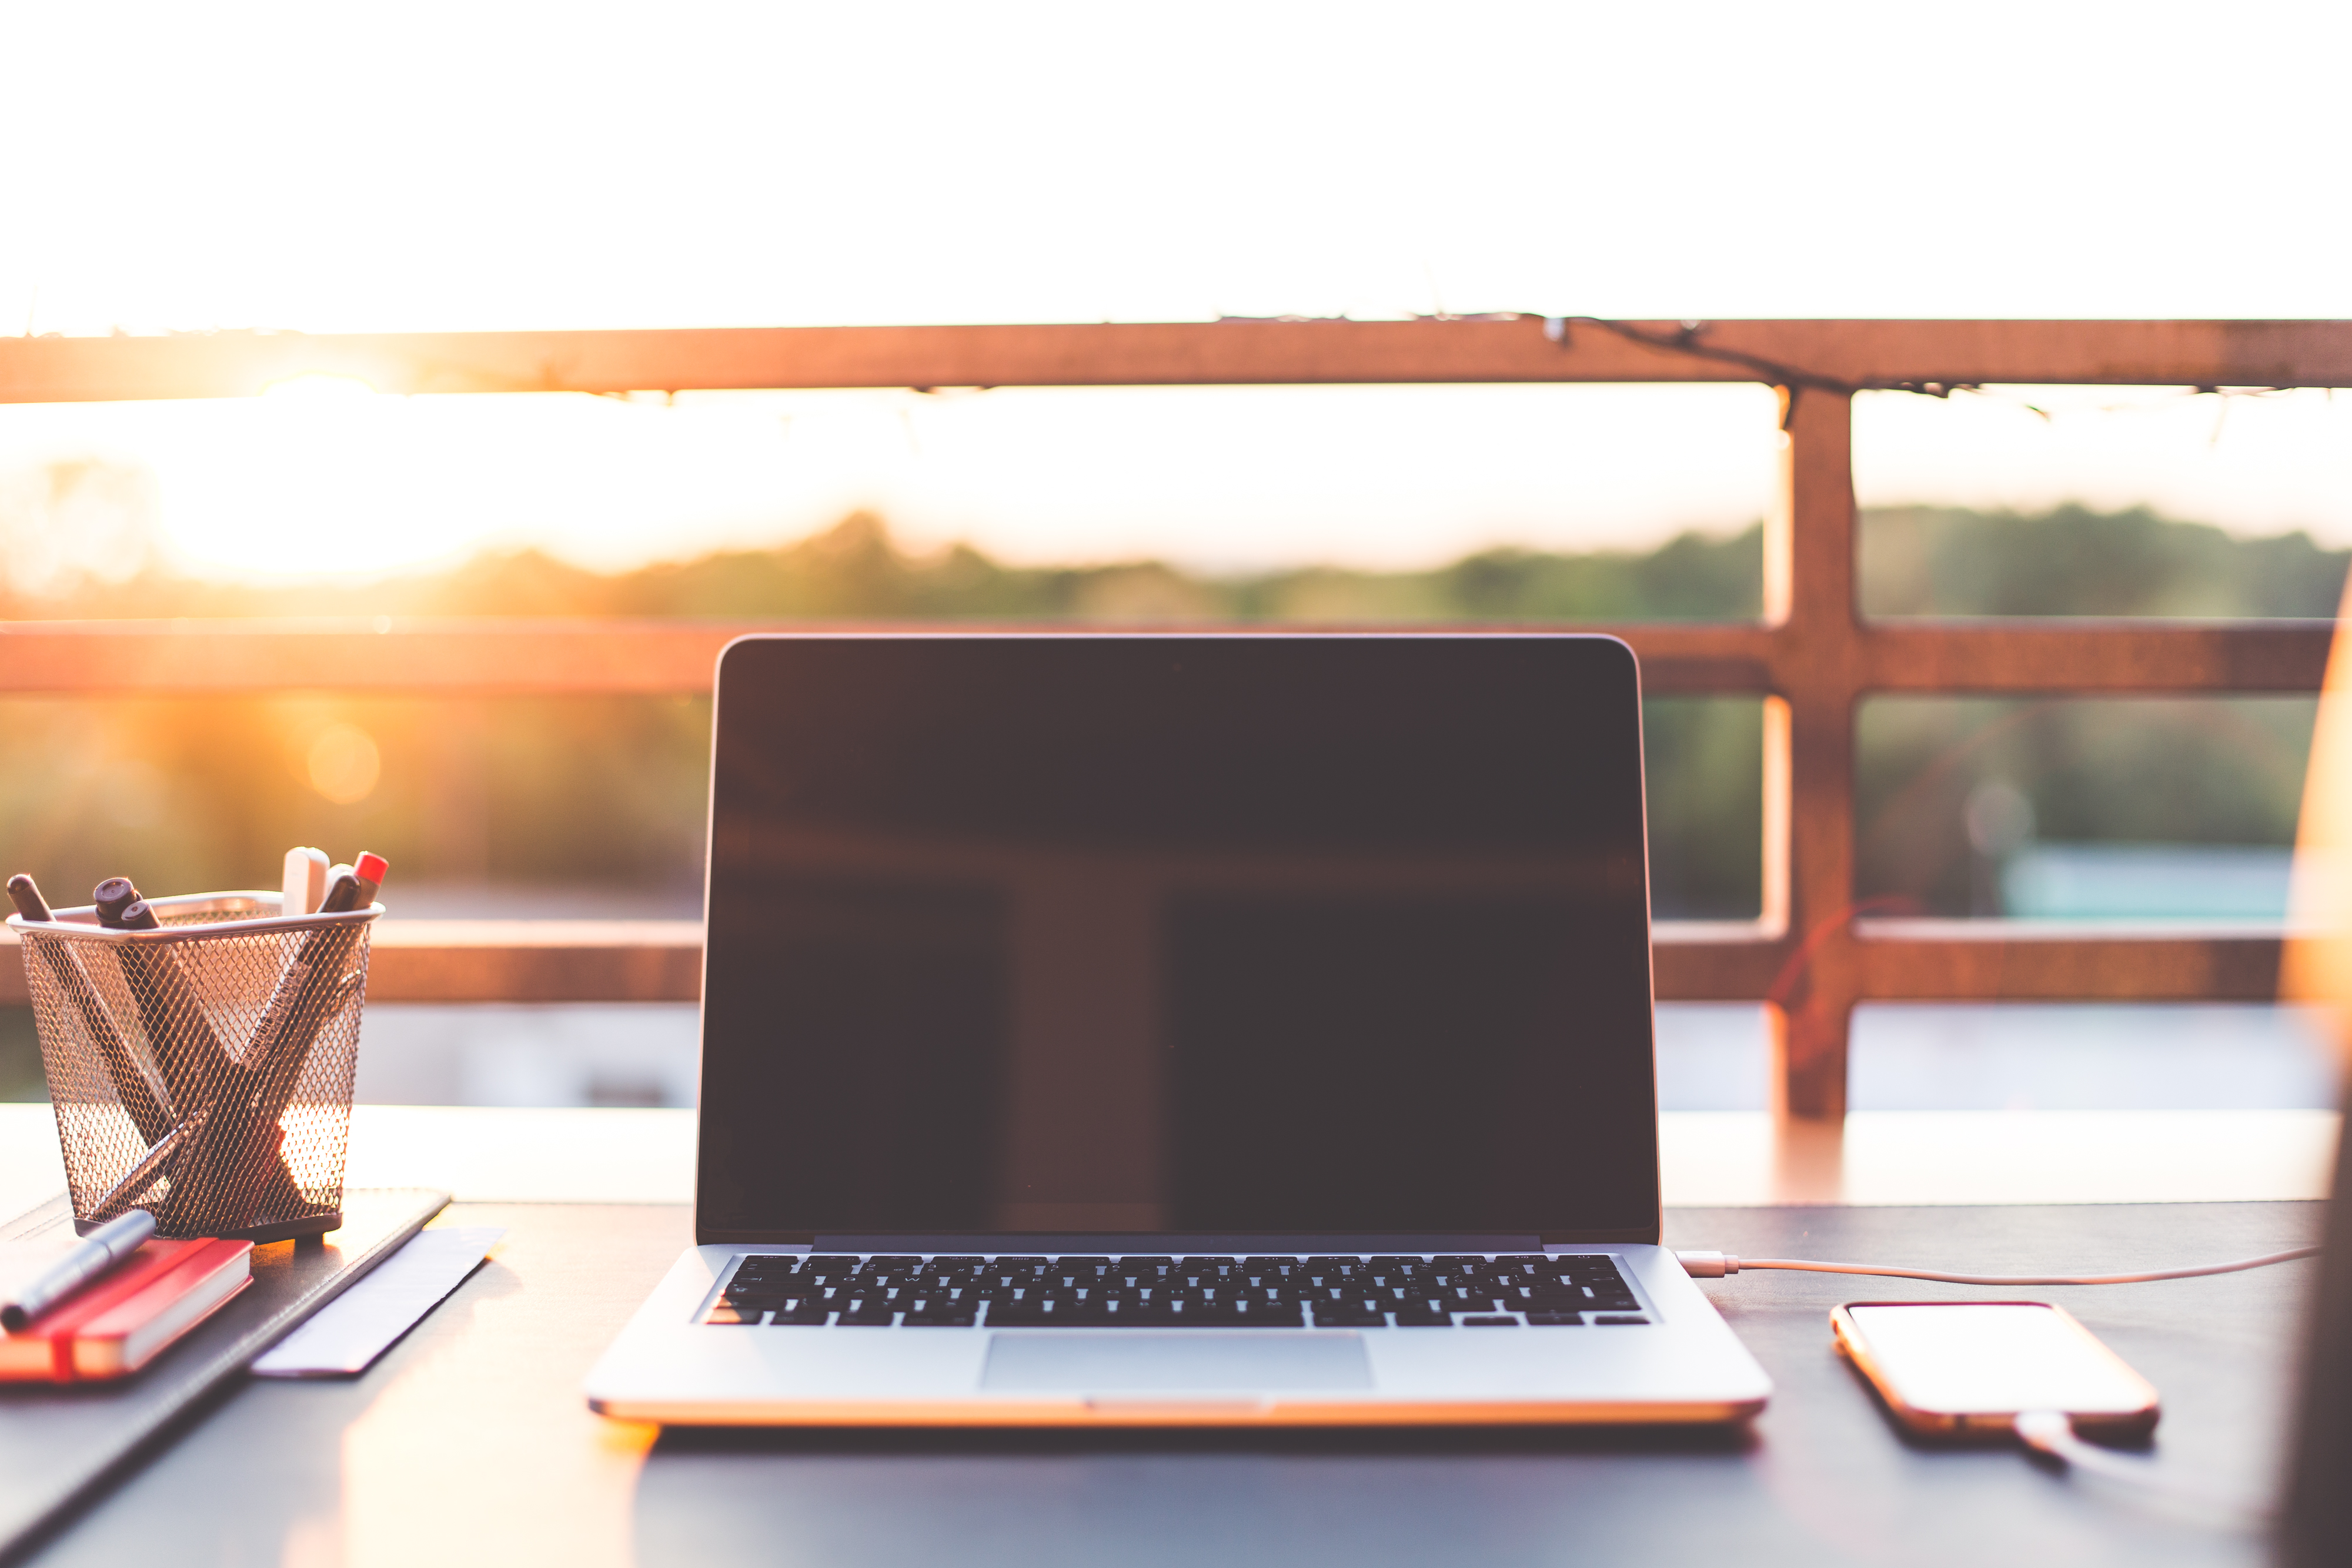 sunset-home-office-working-with-laptop-on-the-garden-picjumbo-com